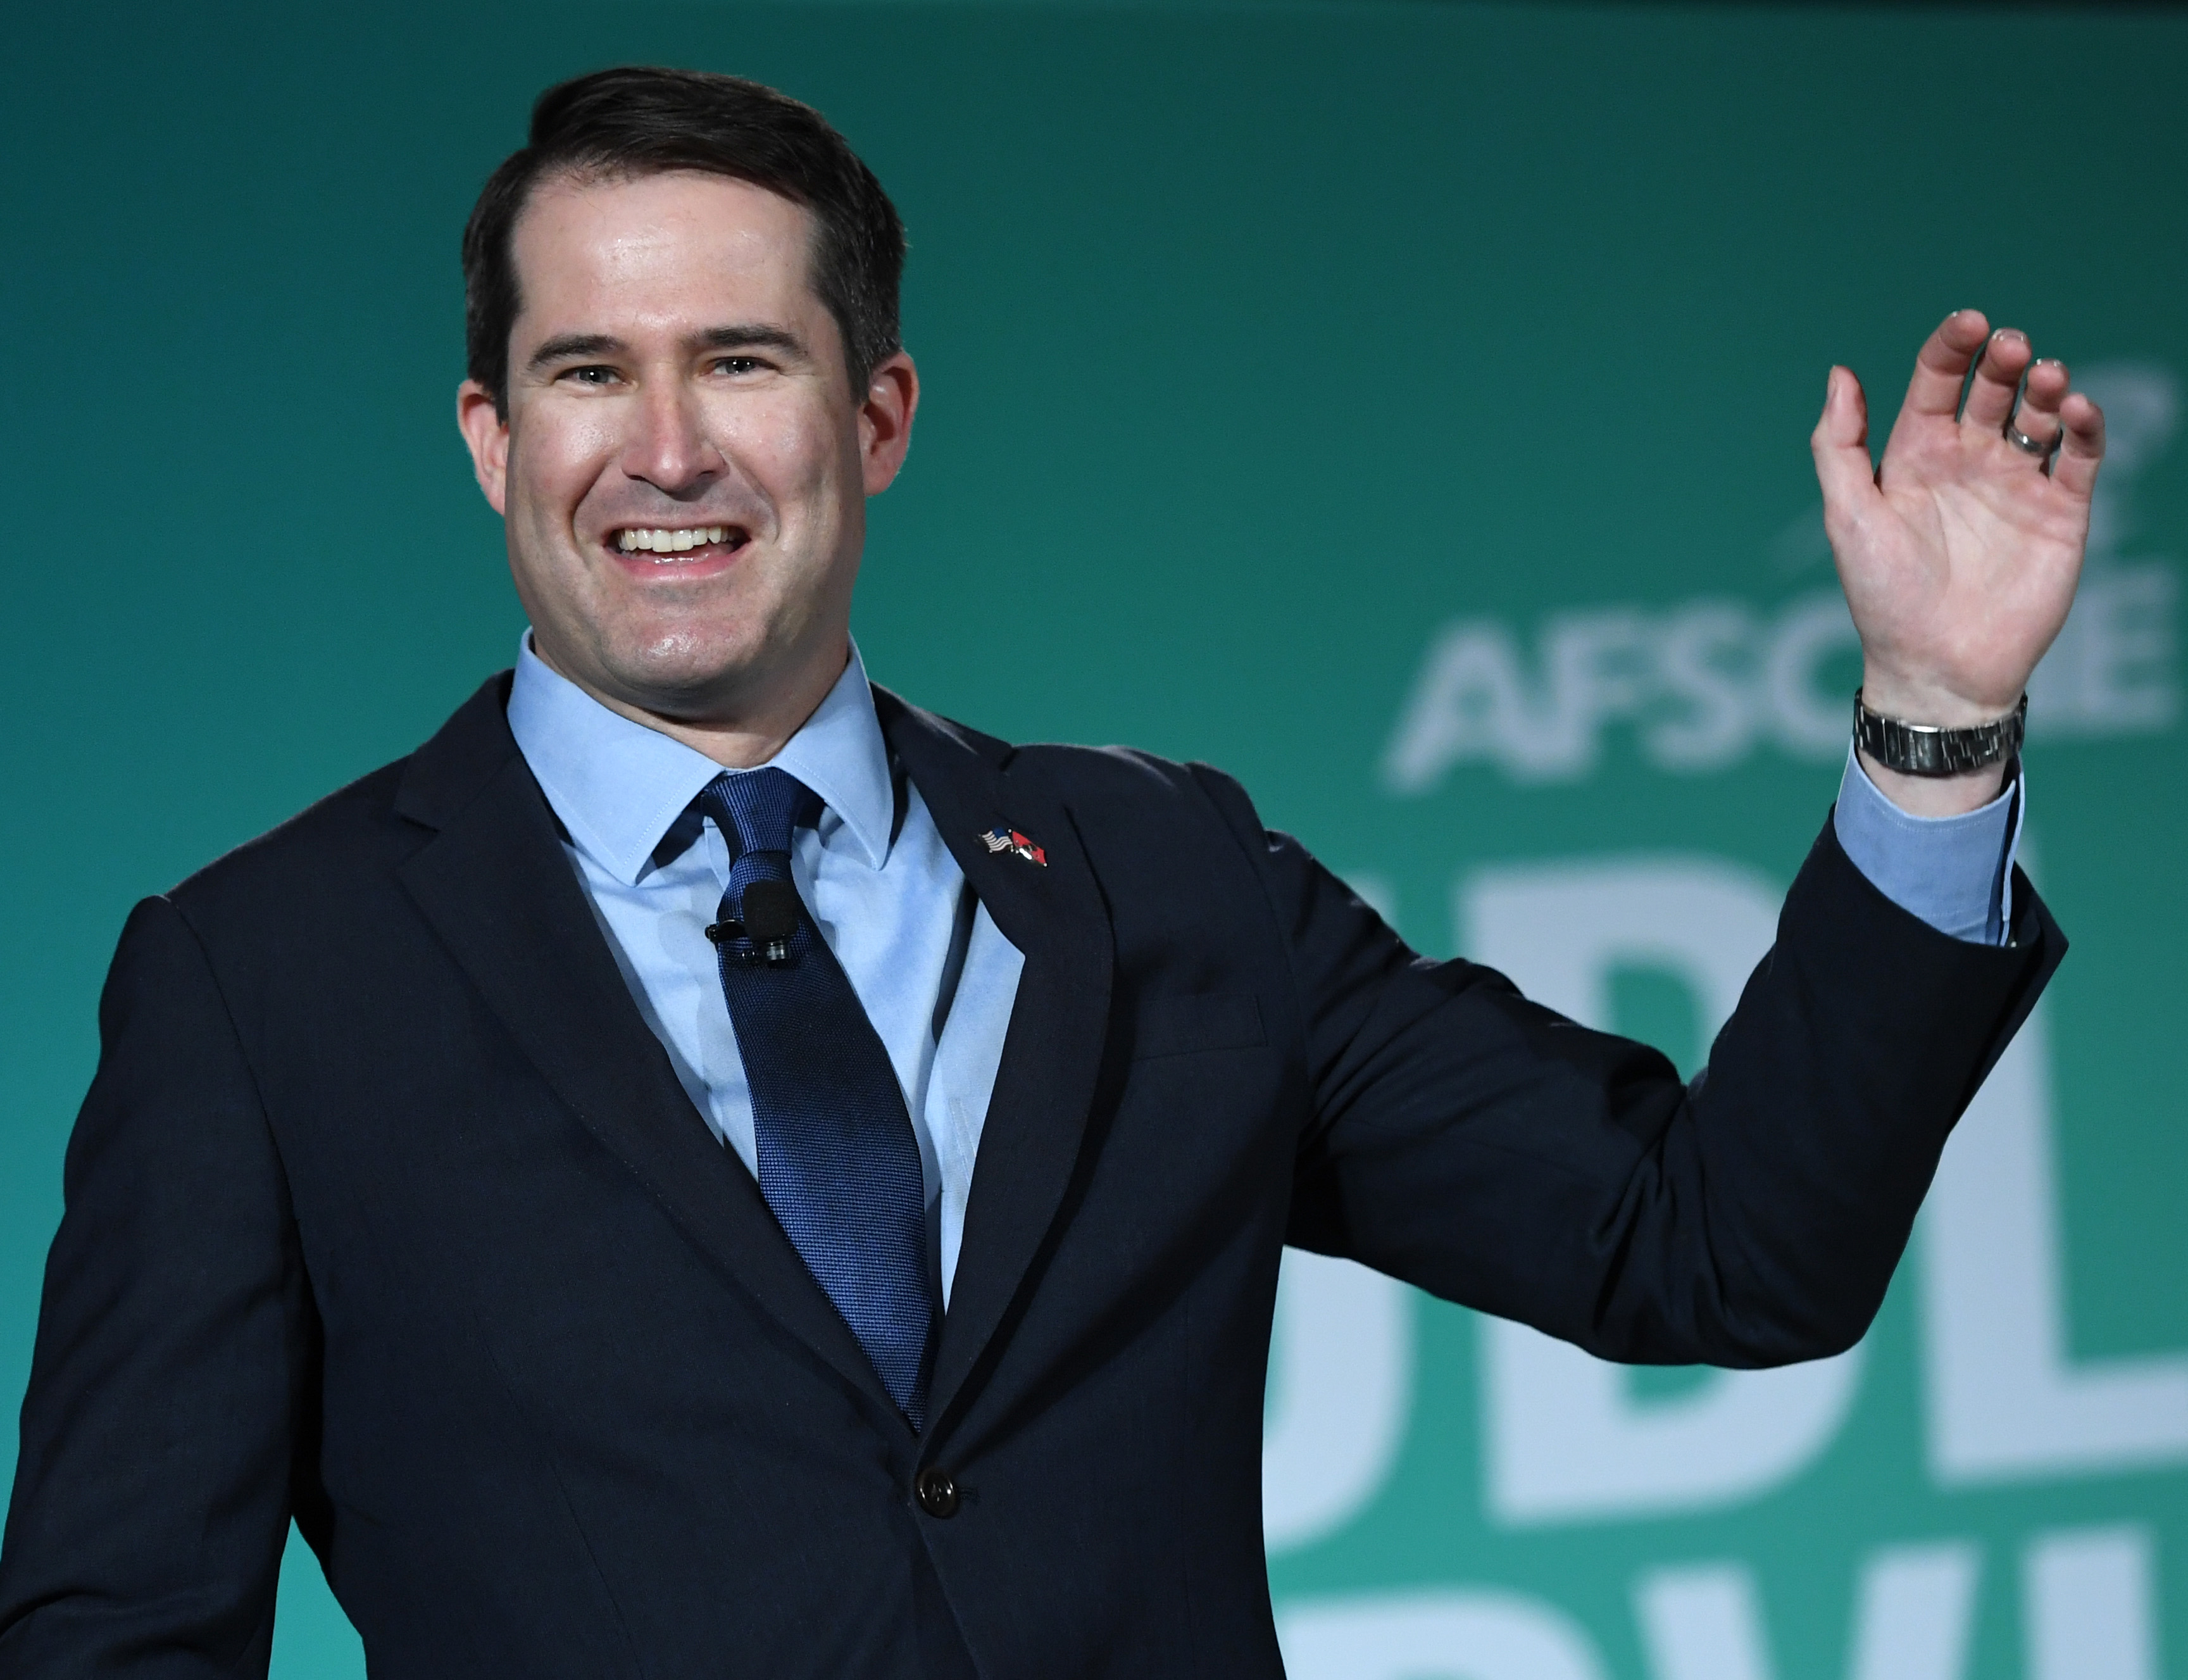 LAS VEGAS, NEVADA - AUGUST 03: Democratic presidential candidate and U.S. Rep. Seth Moulton (D-MA) speaks during the 2020 Public Service Forum hosted by the American Federation of State, County and Municipal Employees (AFSCME) at UNLV on August 3, 2019 in Las Vegas, Nevada. Nineteen of the 24 candidates running for the Democratic party's 2020 presidential nomination are addressing union members in a state with one of the largest organized labor populations in the United States. (Photo by Ethan Miller/Getty Images)